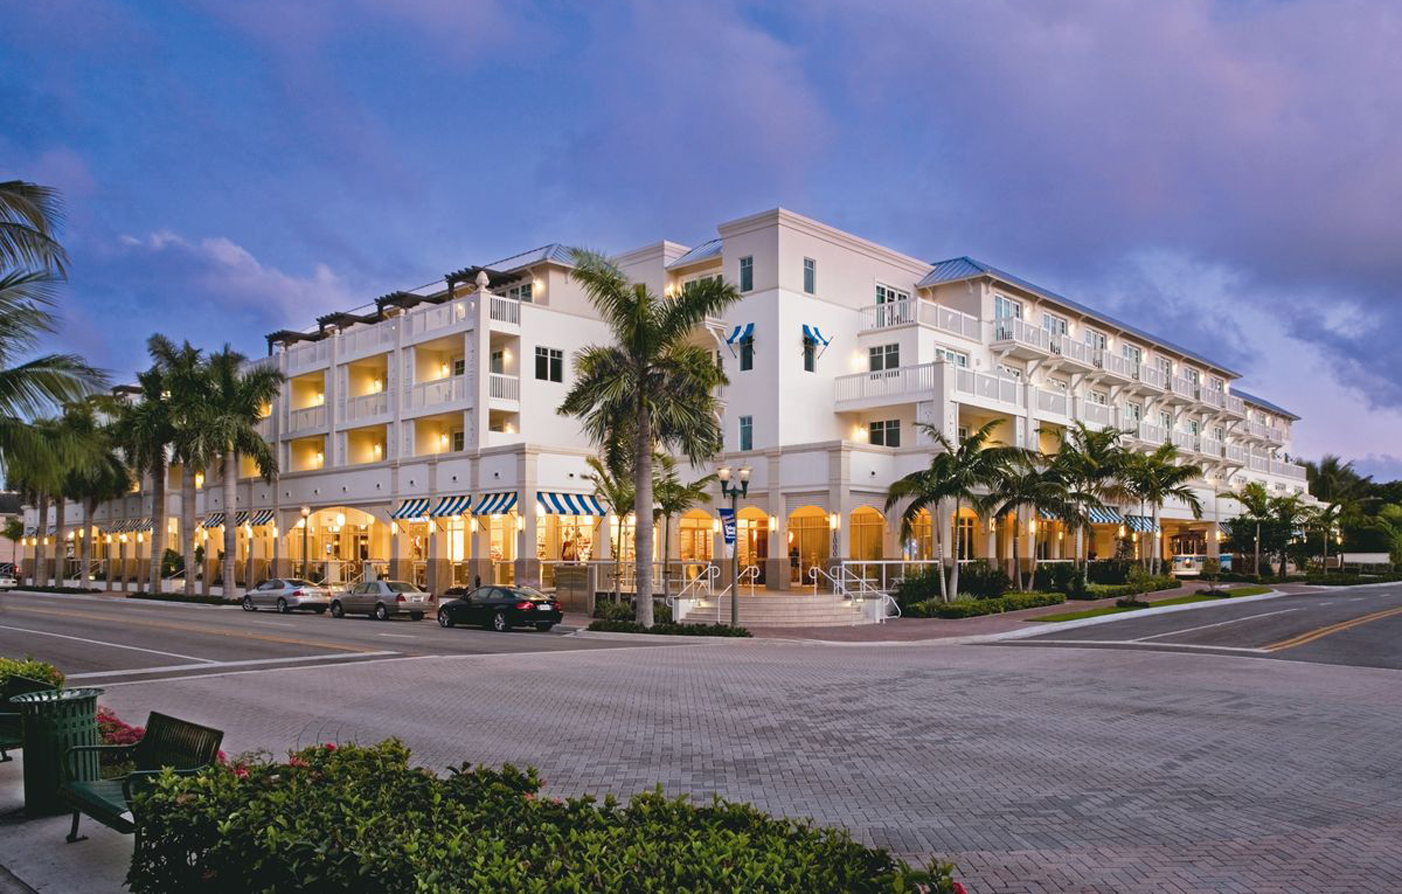 Delray beach resorts the seagate hotel spa luxury for Luxury beach hotels